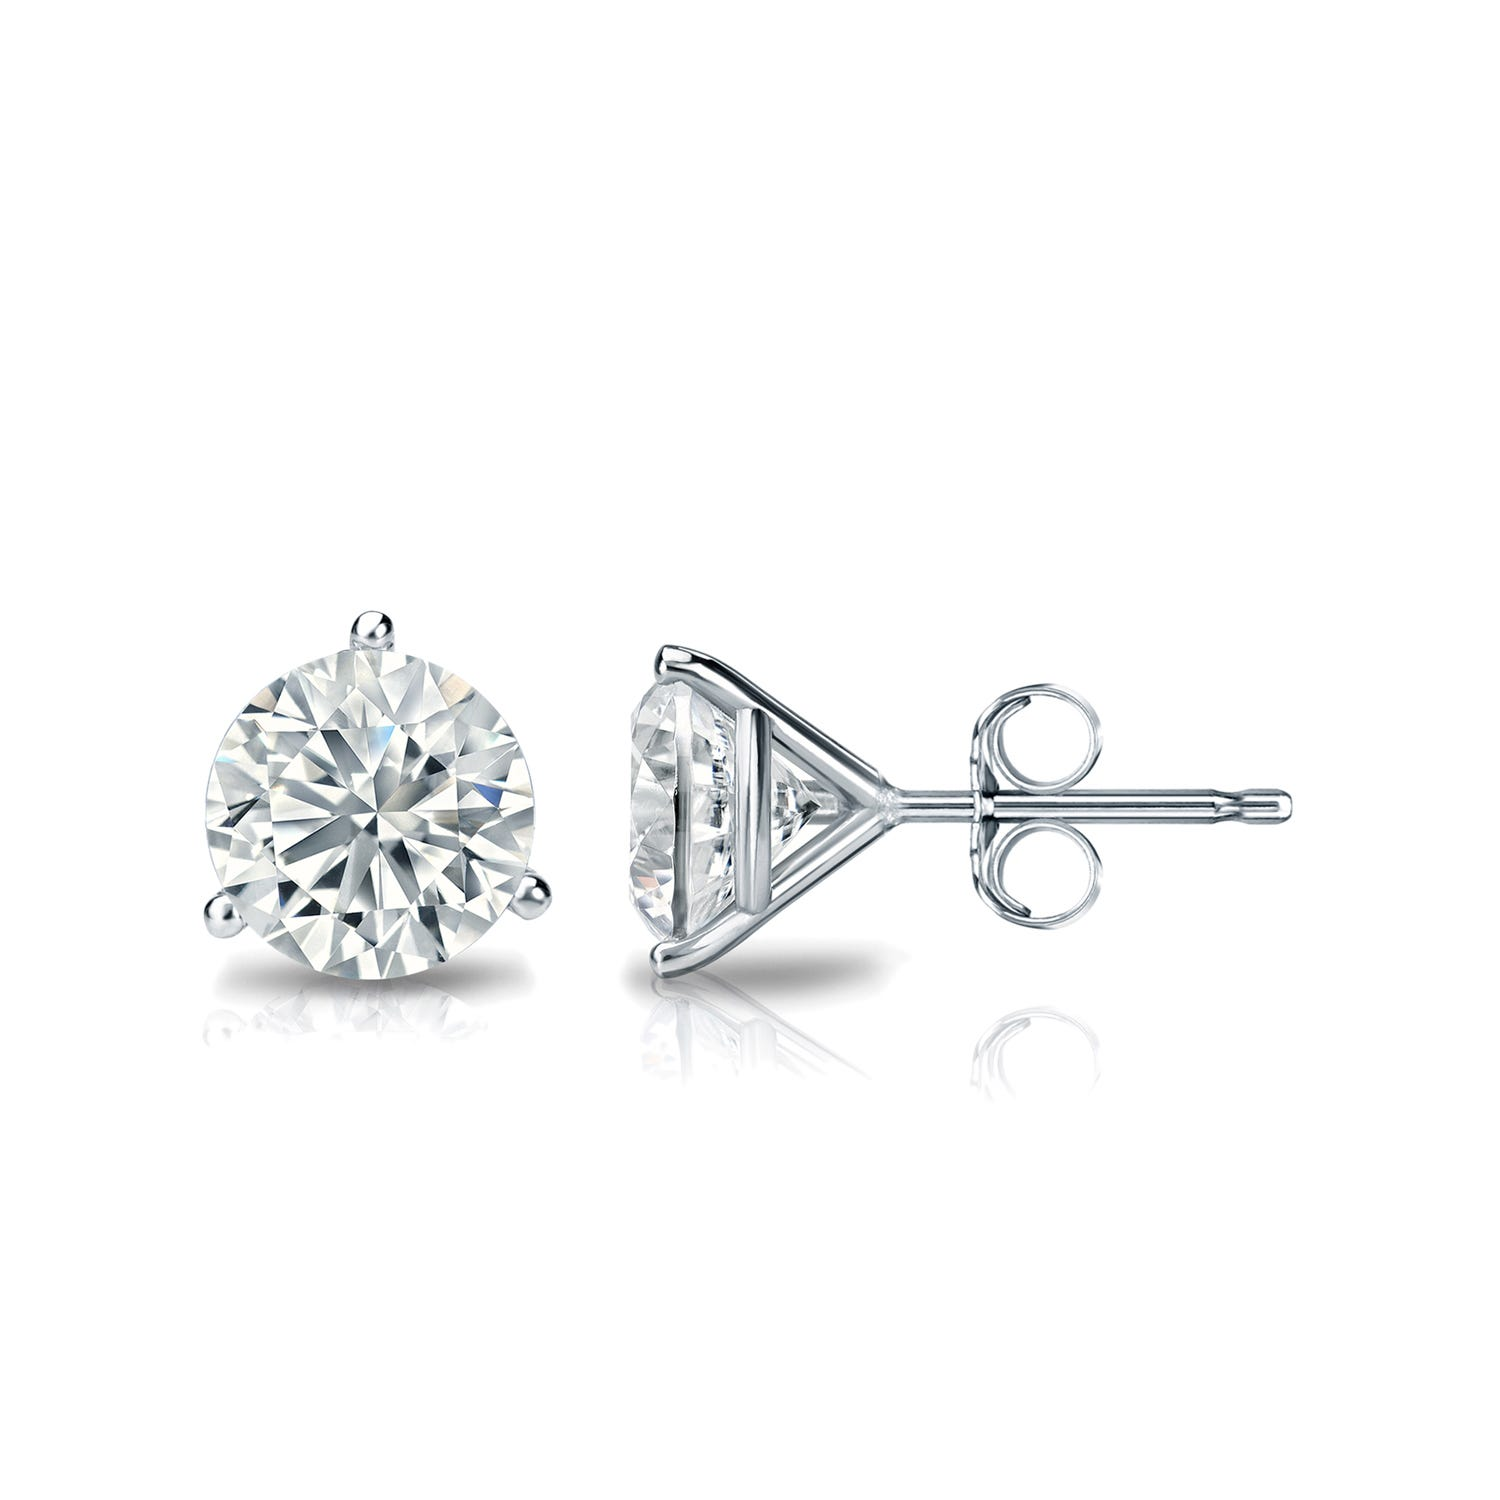 1 CTTW Round Diamond Solitaire Stud Earrings IJ SI1 in Platinum IGI Certified 3-Prong Setting